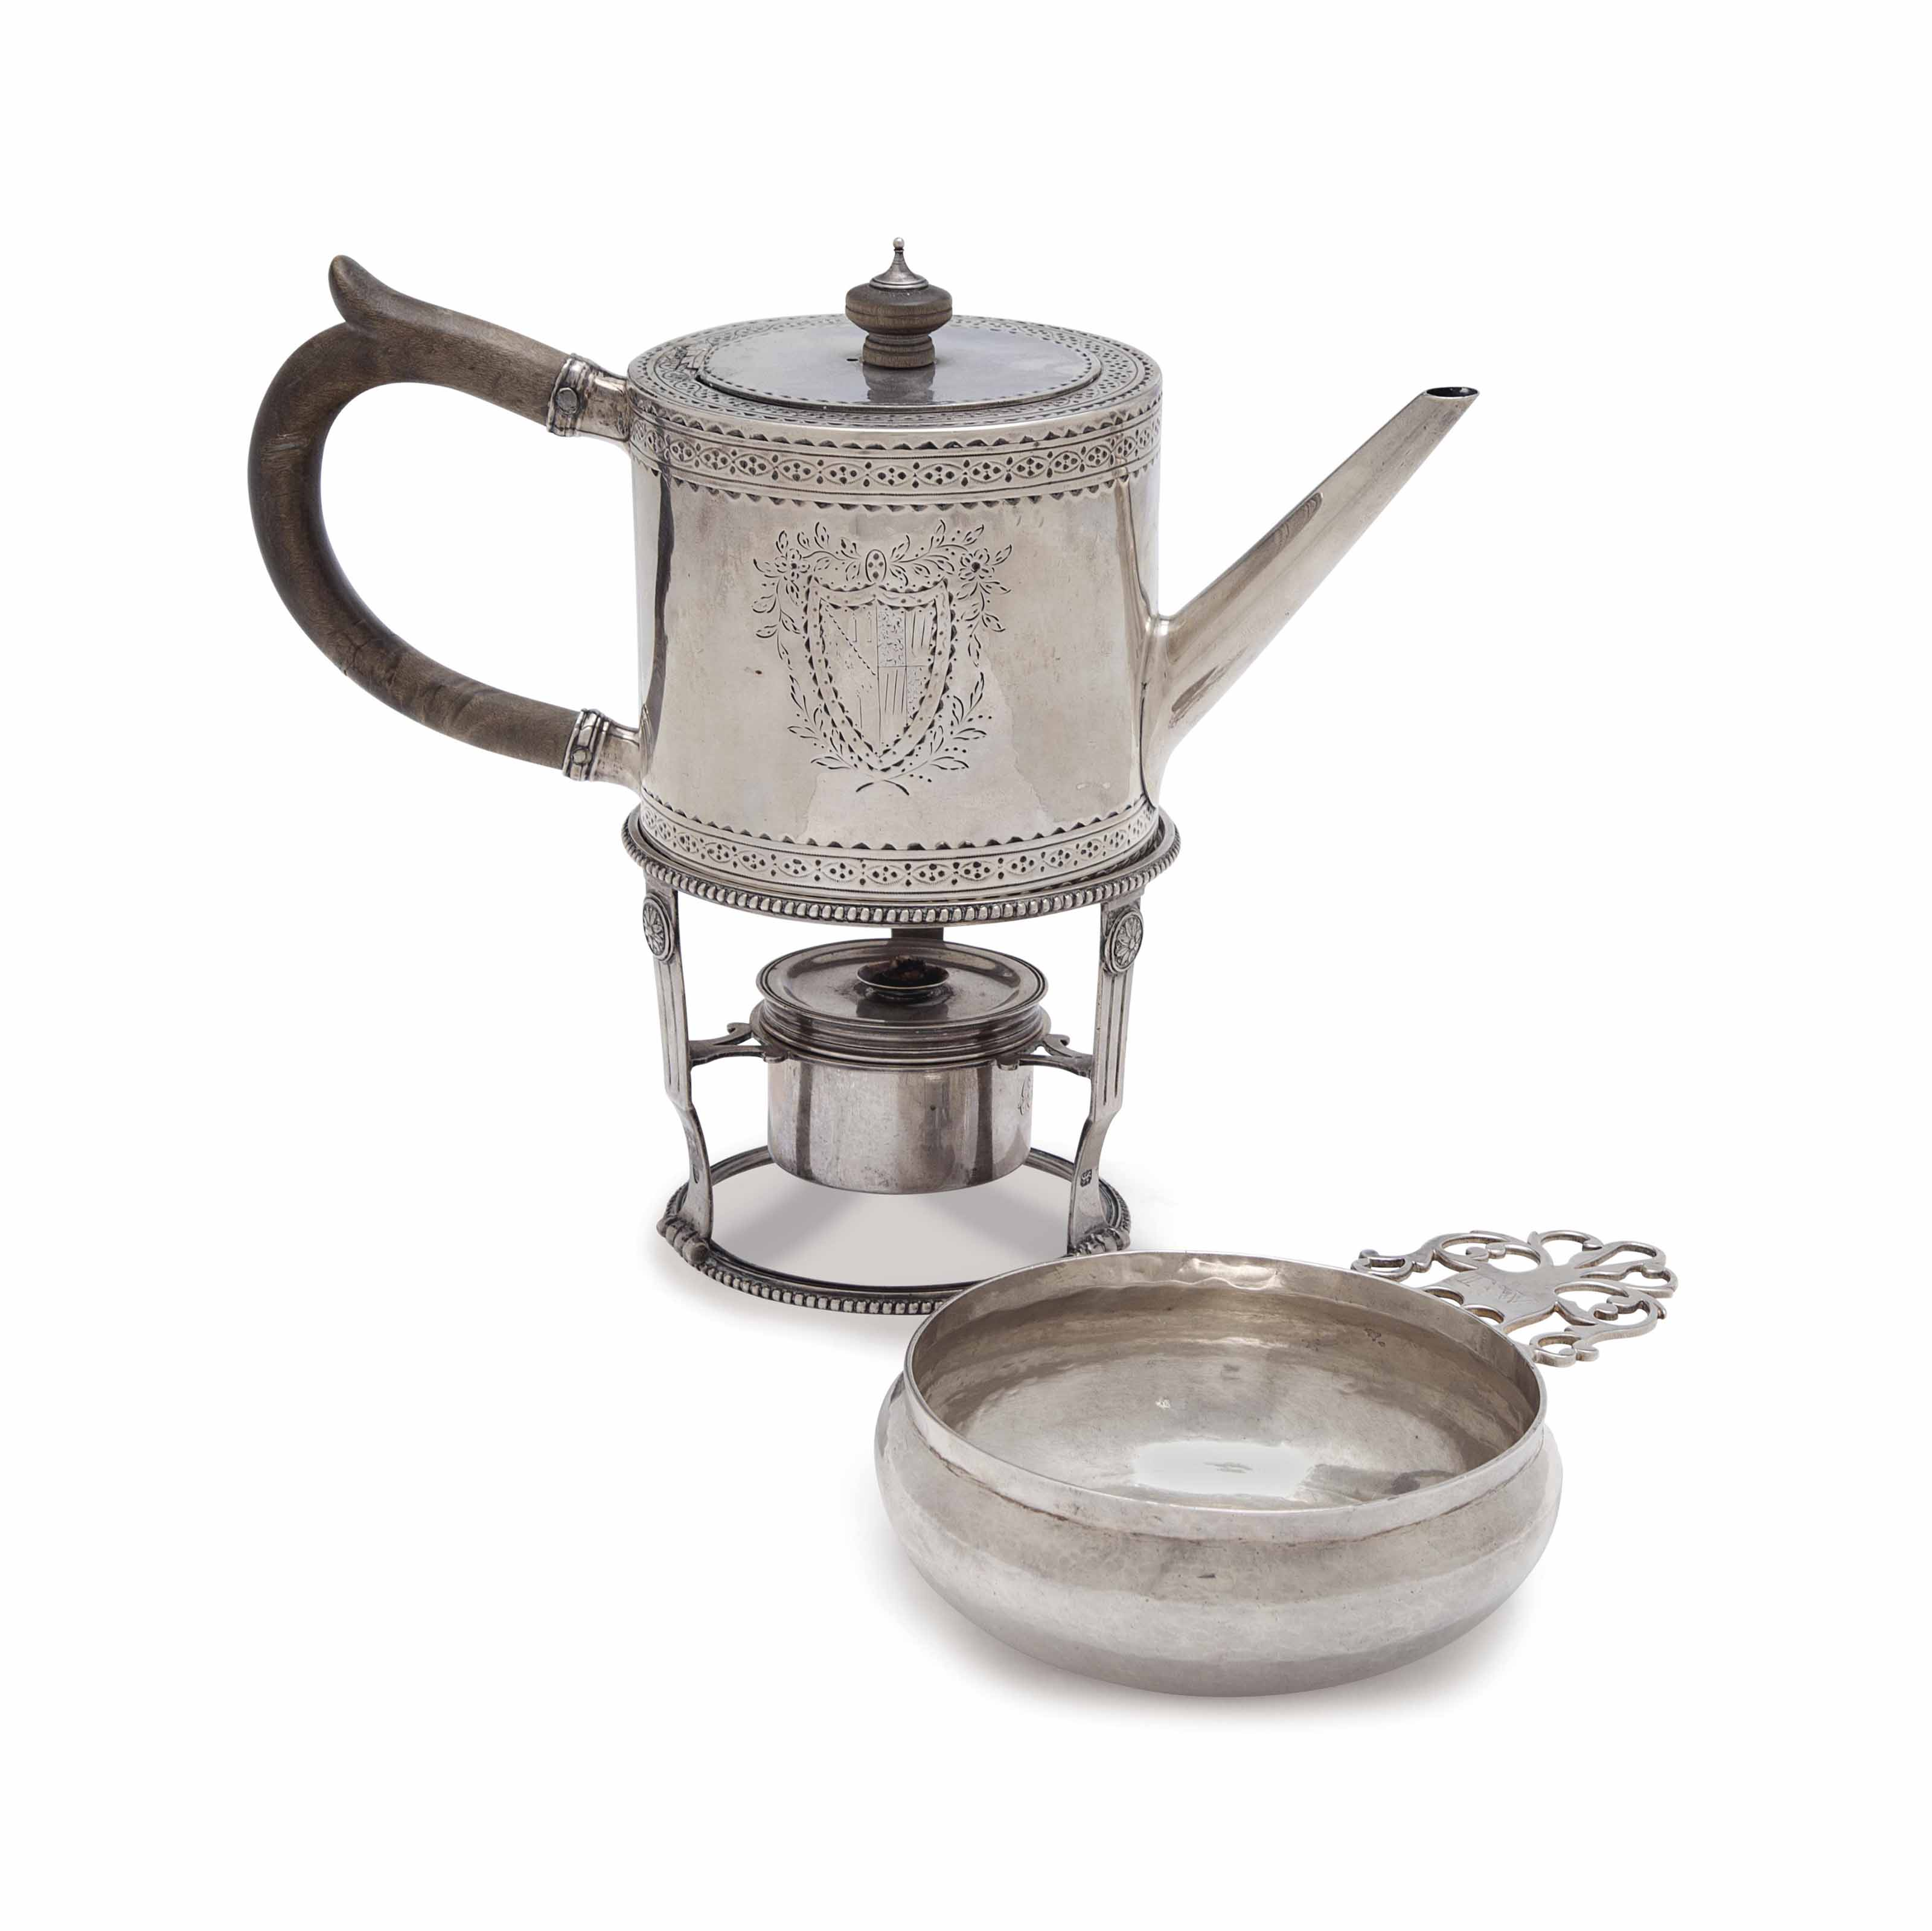 A QUEEN ANNE SILVER PORRINGER, AND A GEORGE III SILVER DRUM-FORM TEAPOT,